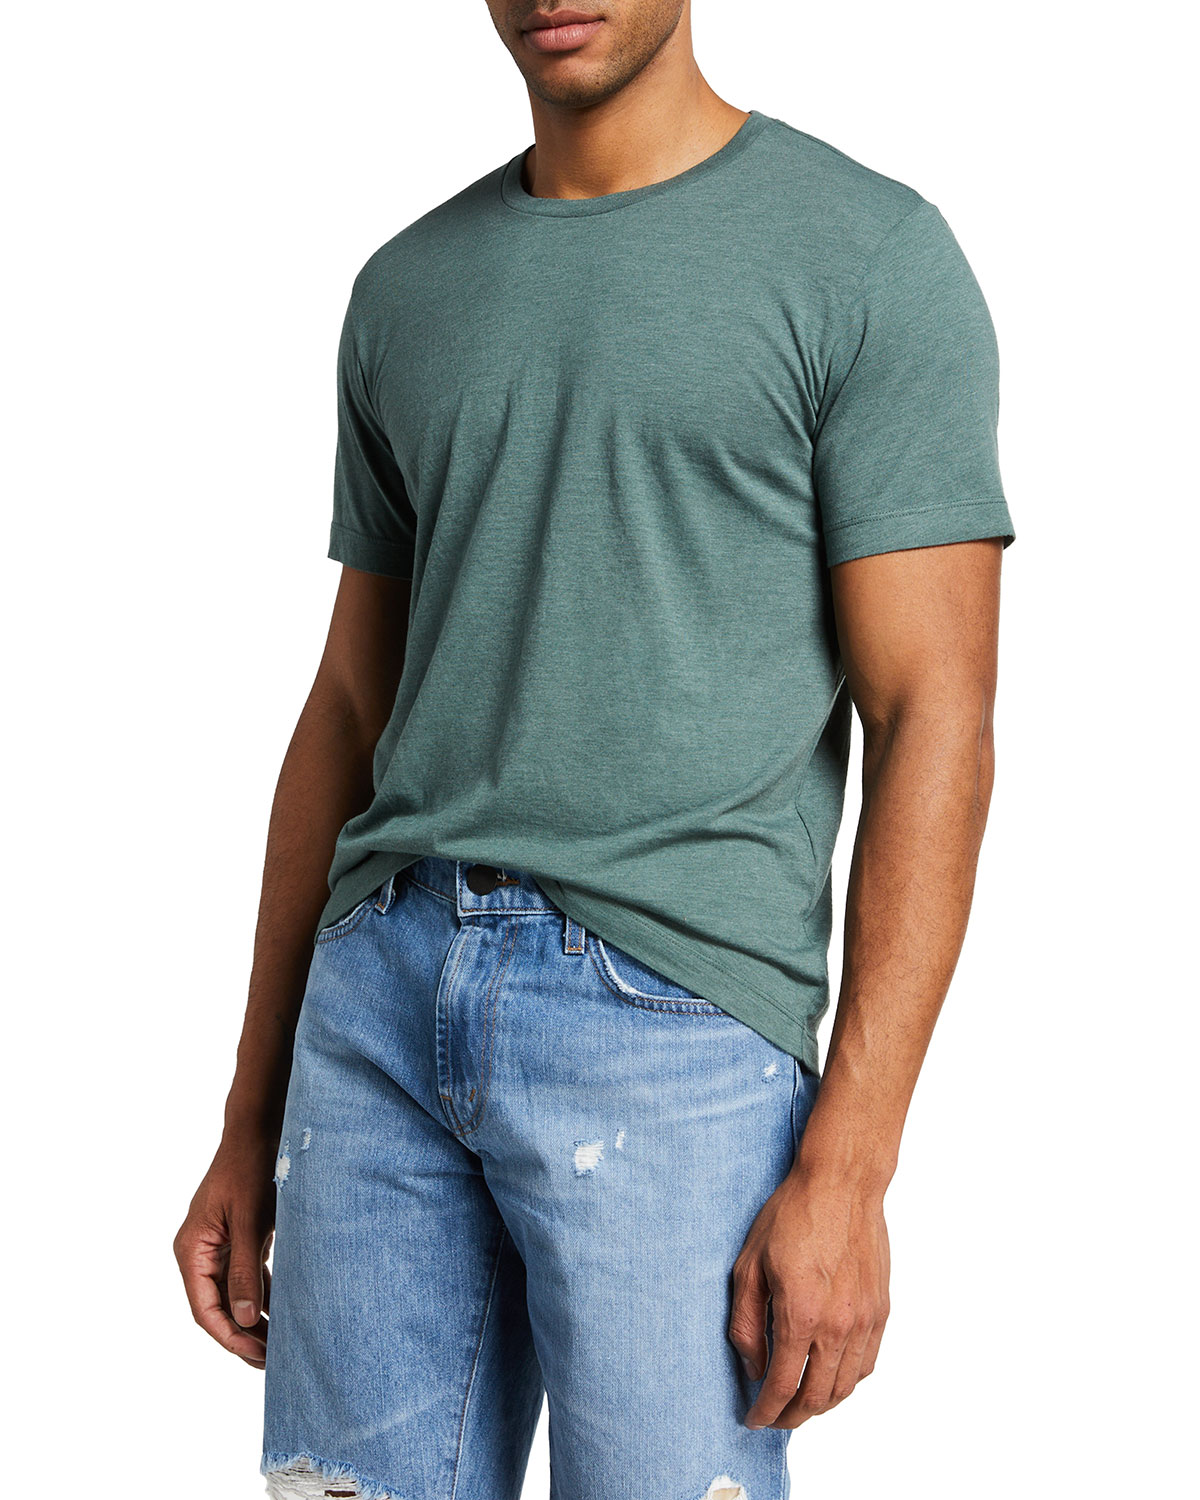 J Brand Men's Hexator Short-Sleeve Crewneck T-Shirt